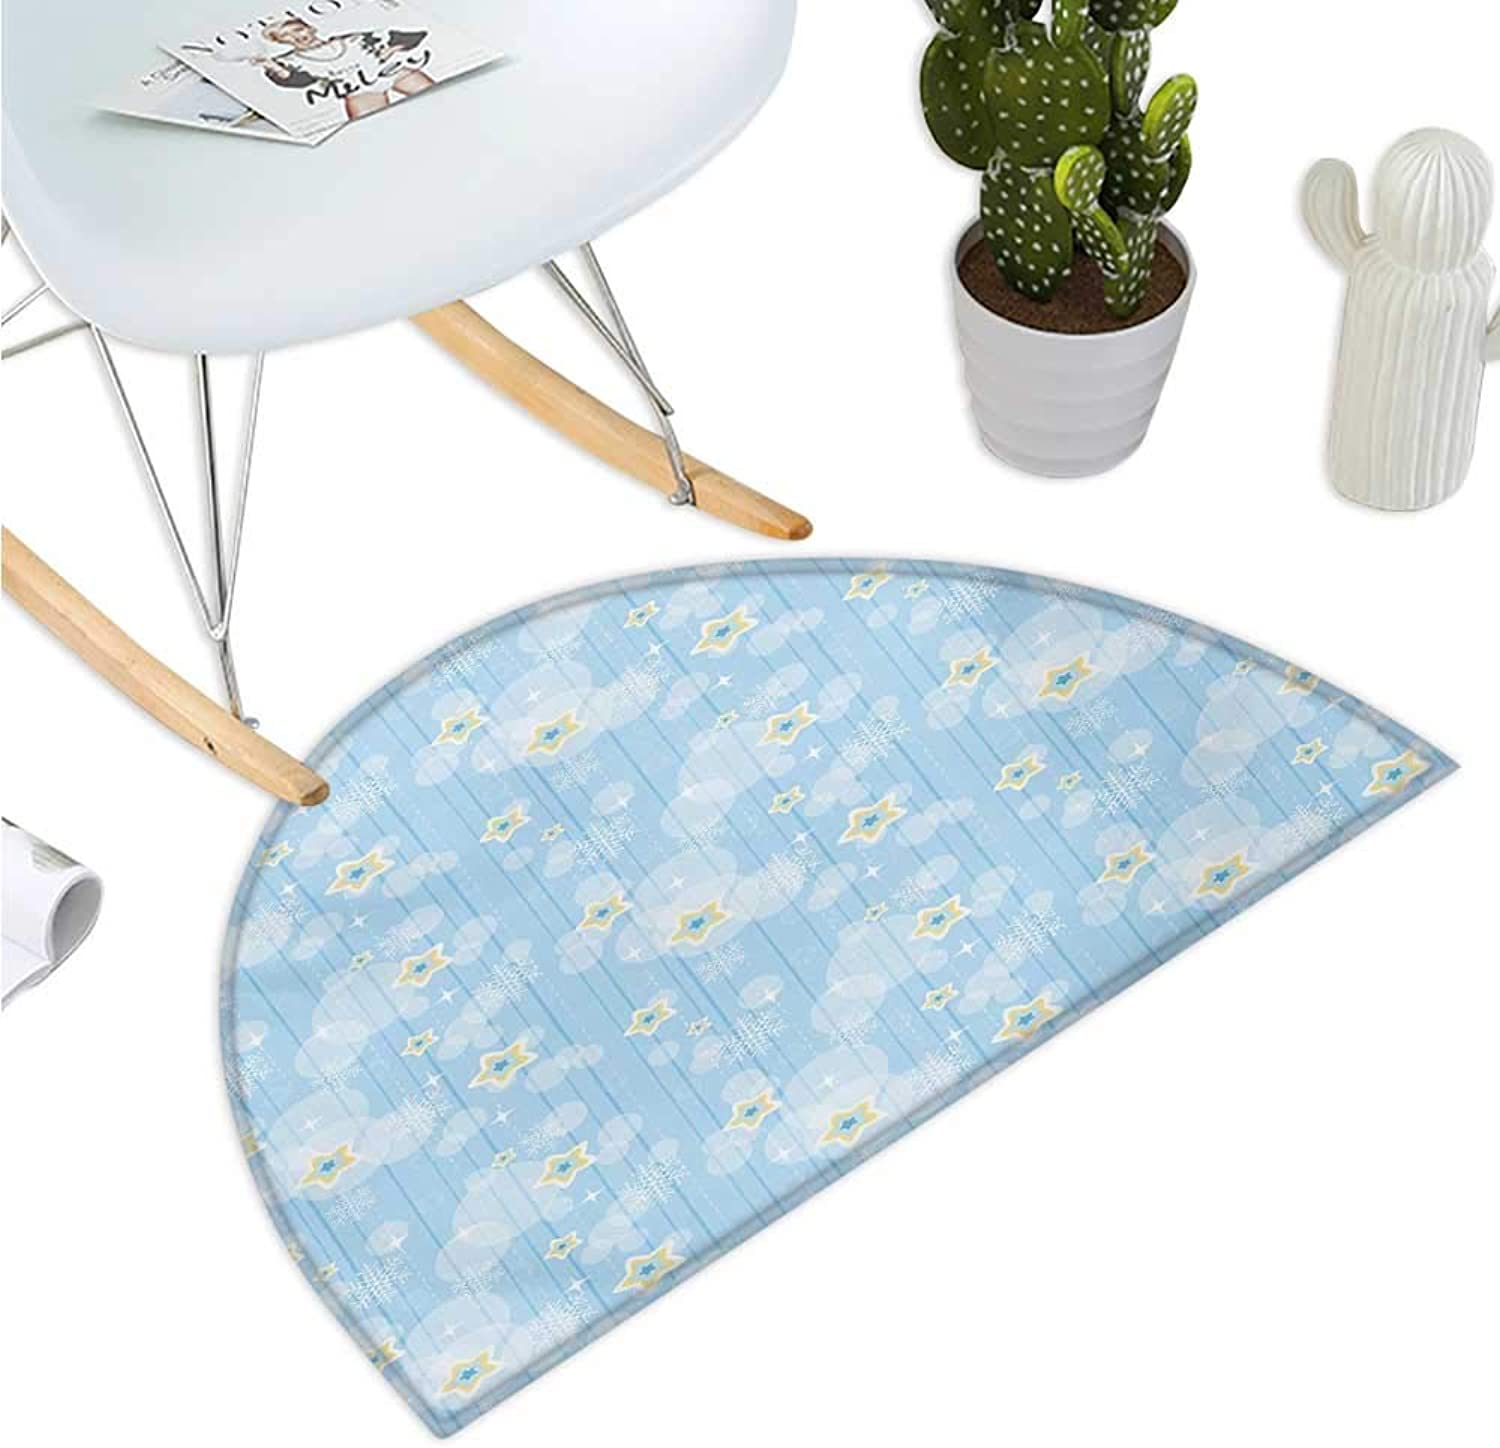 Winter Semicircle Doormat Cute Kids Baby Pattern Night Sky with Soft colord Stars Year Theme Entry Door Mat H 39.3  xD 59  Baby bluee Yellow White